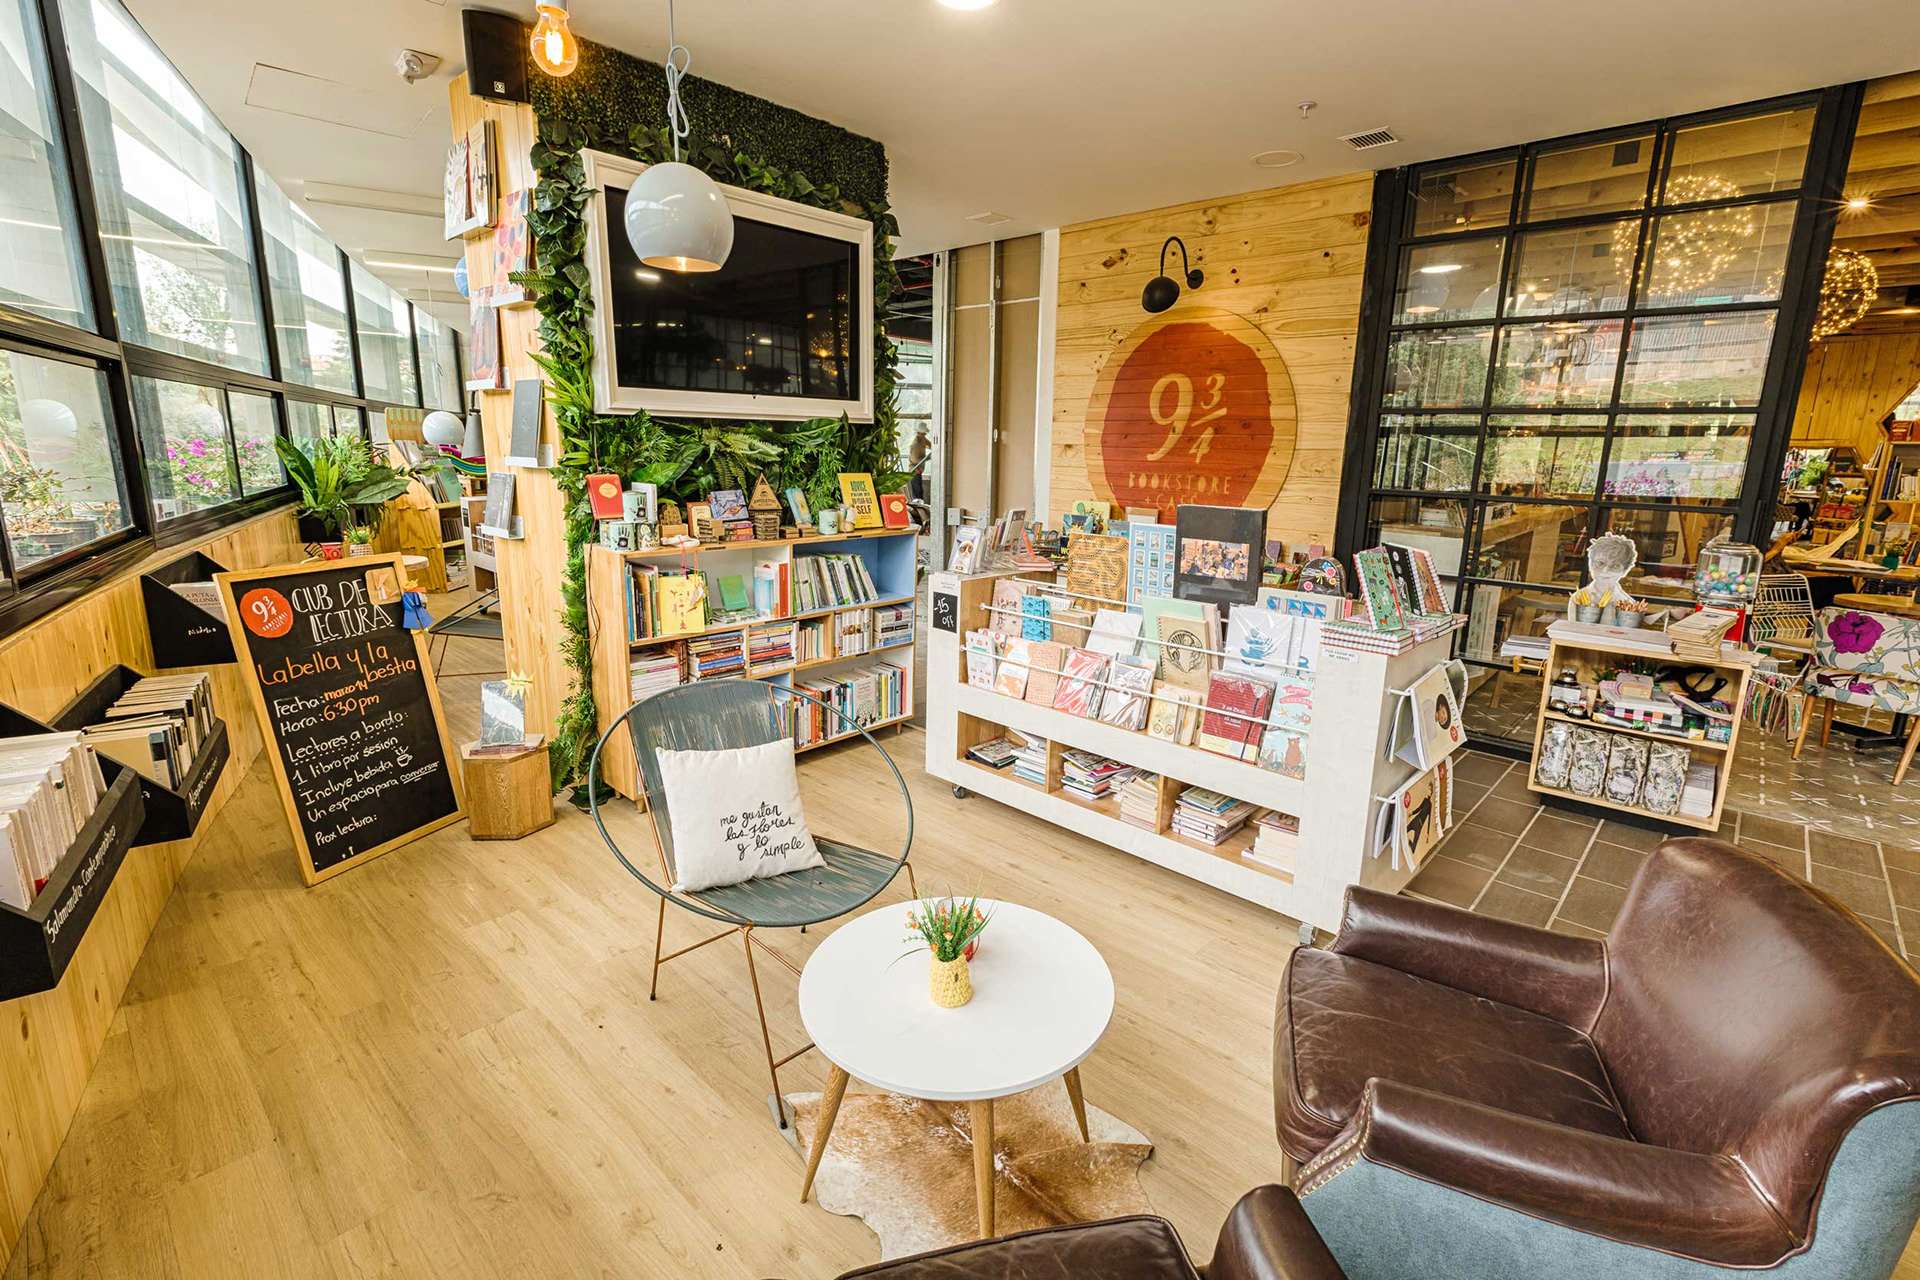 9 34 Bookstore Cafe 3